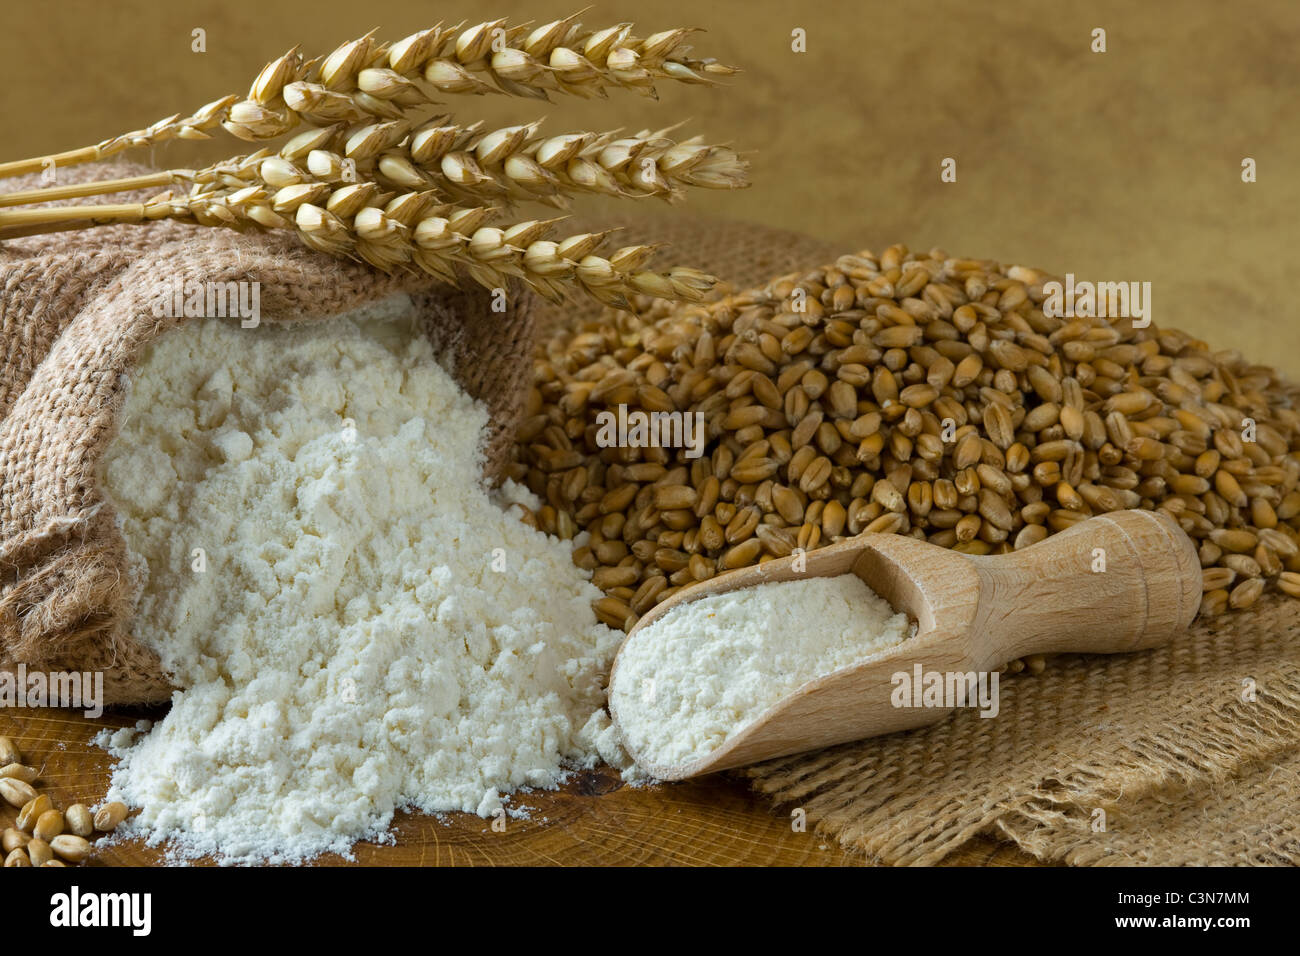 Wheat grain and flour in small burlap bag - Stock Image